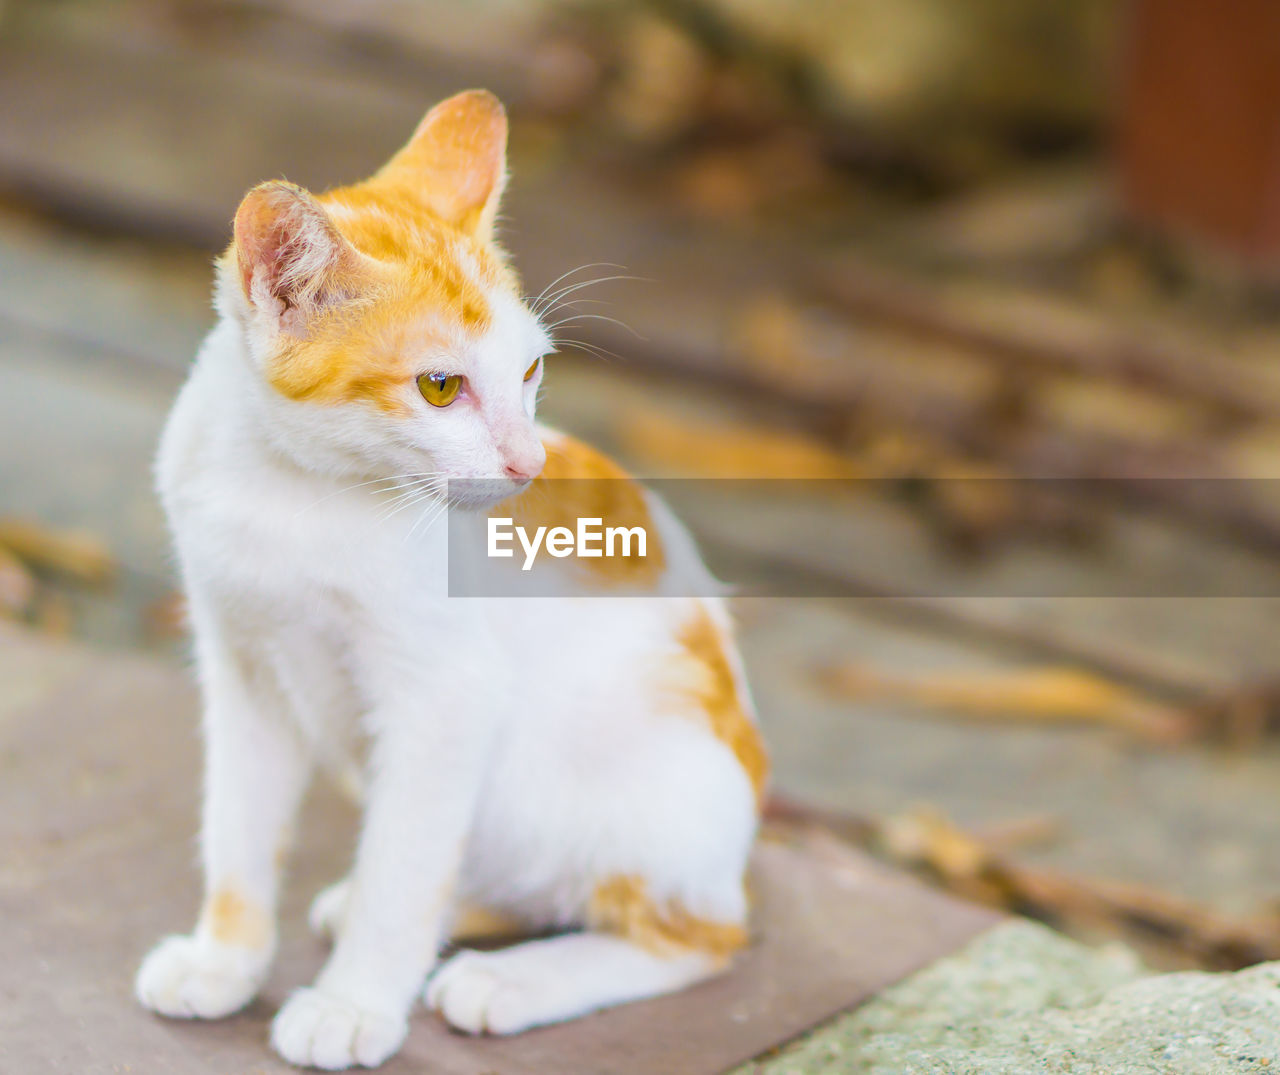 animal themes, animal, mammal, one animal, domestic animals, domestic, pets, domestic cat, vertebrate, cat, feline, looking, looking away, no people, sitting, focus on foreground, day, close-up, selective focus, whisker